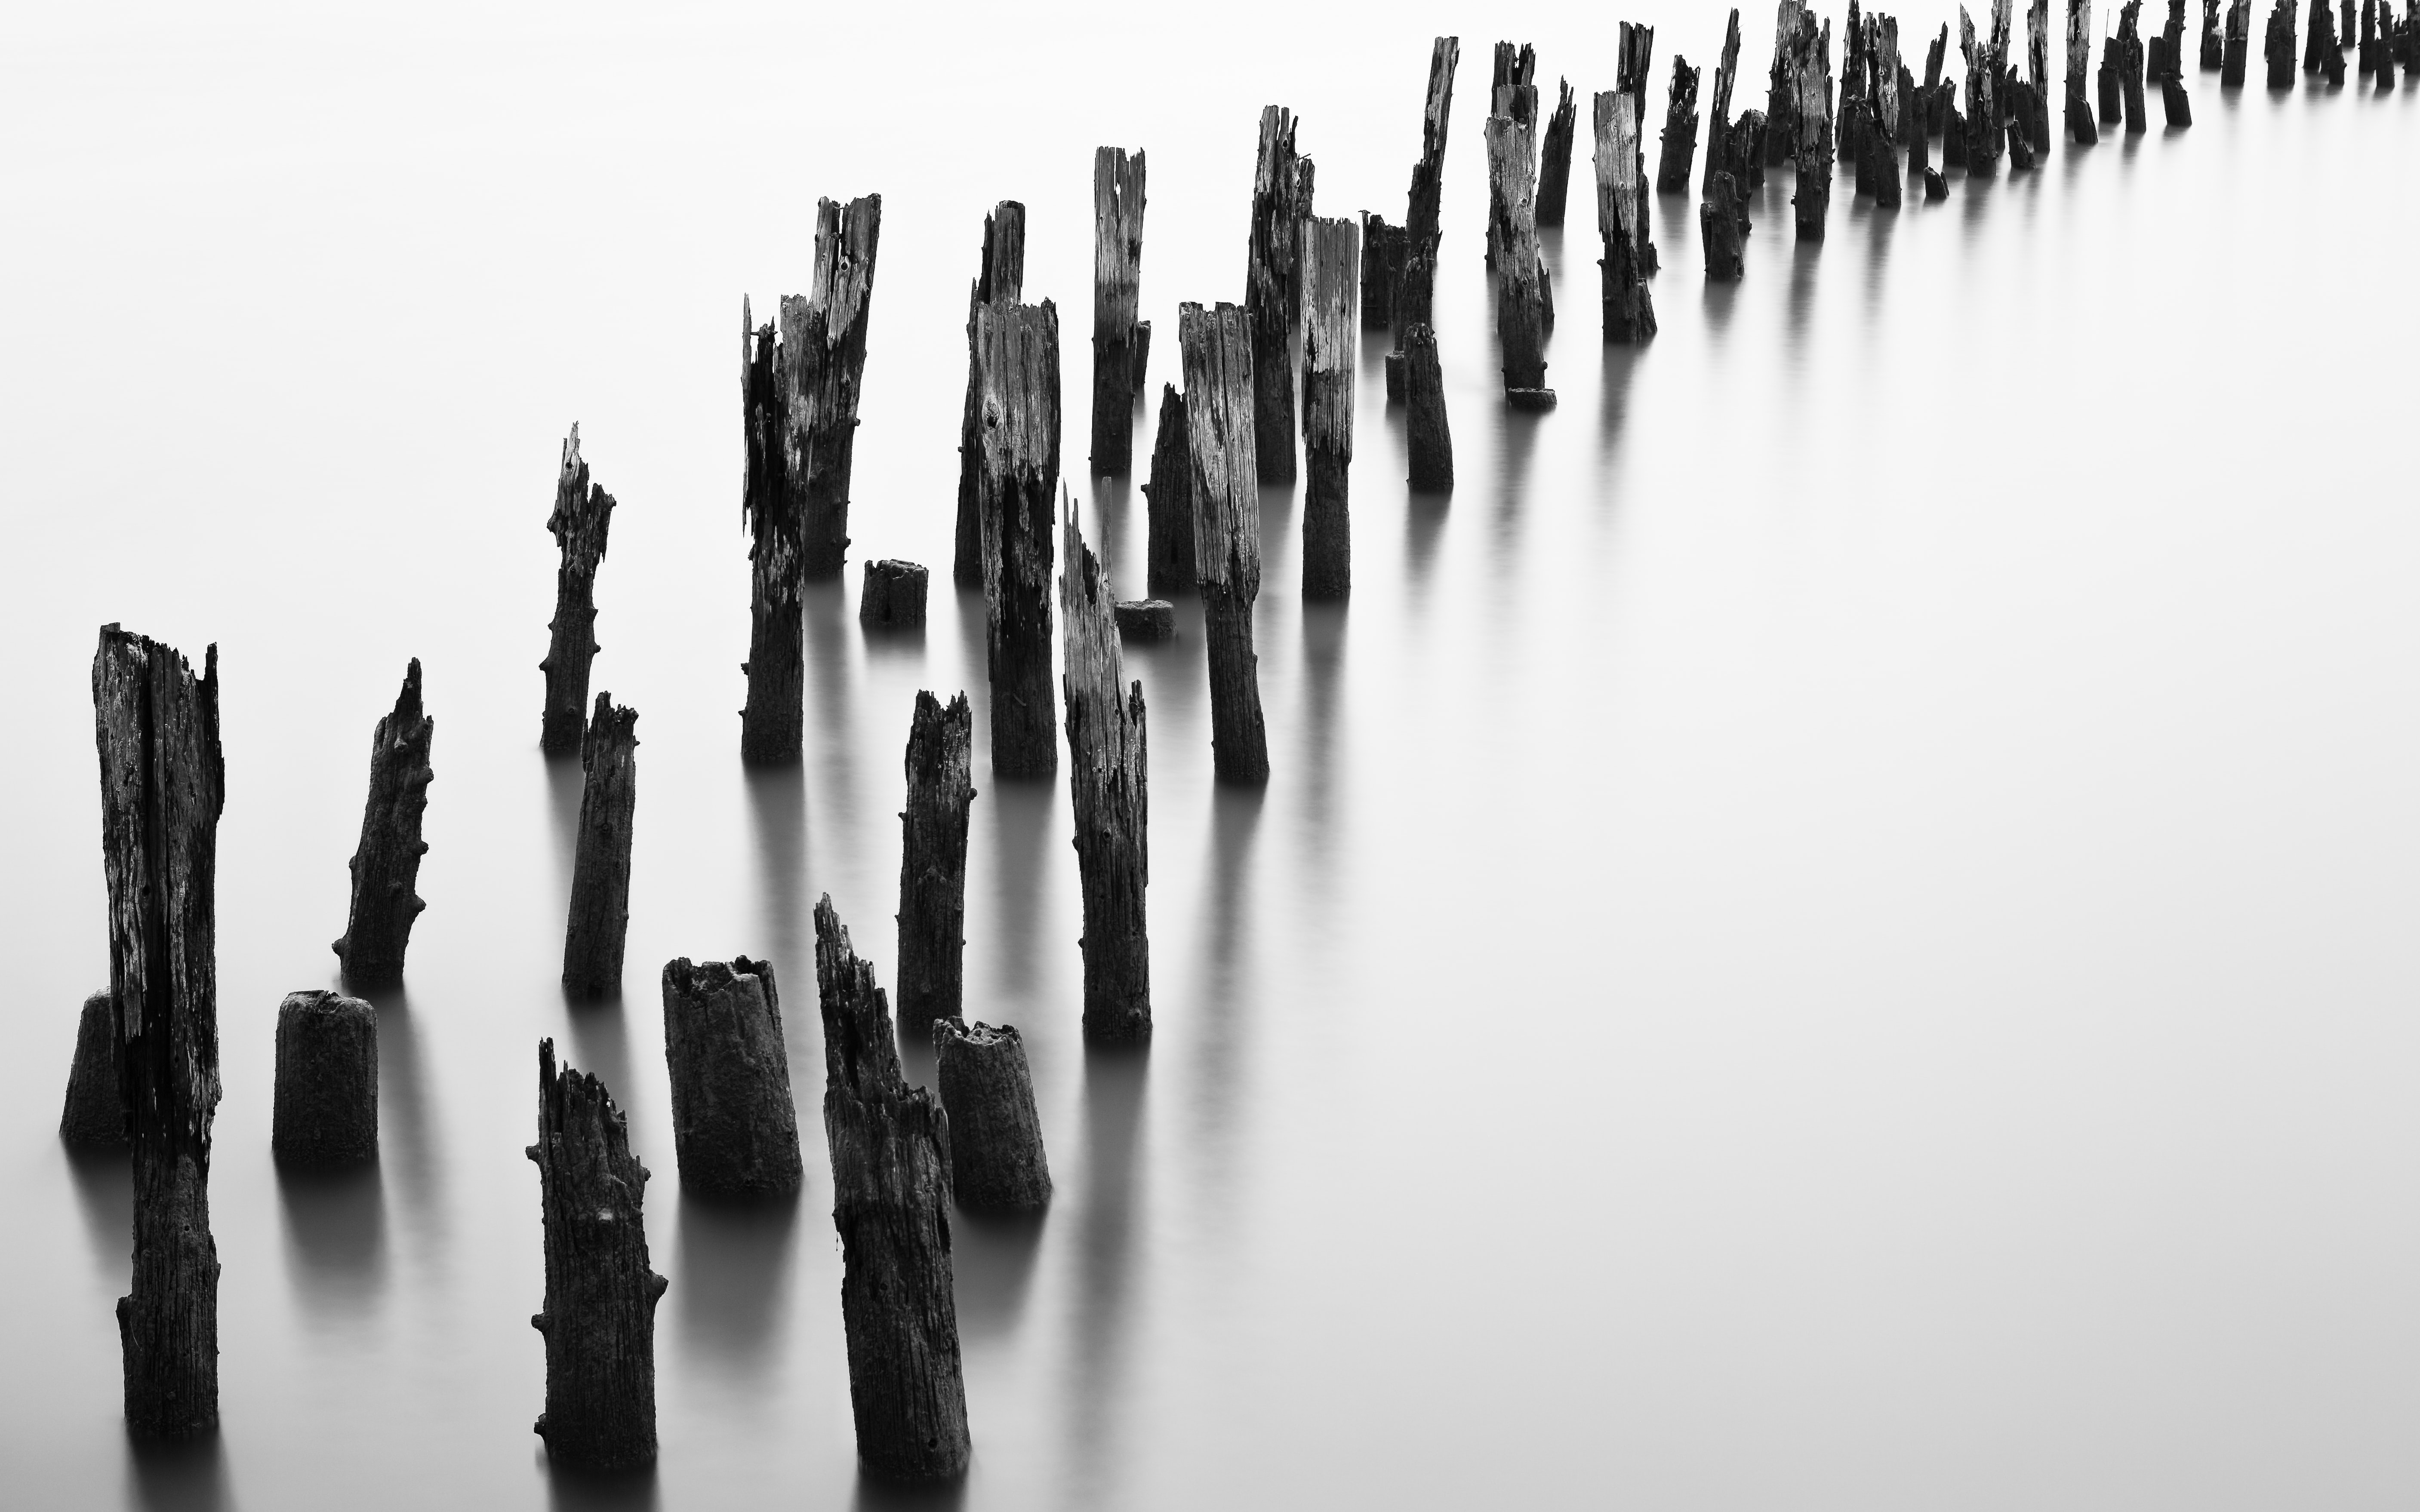 grayscale photo of wood trunks